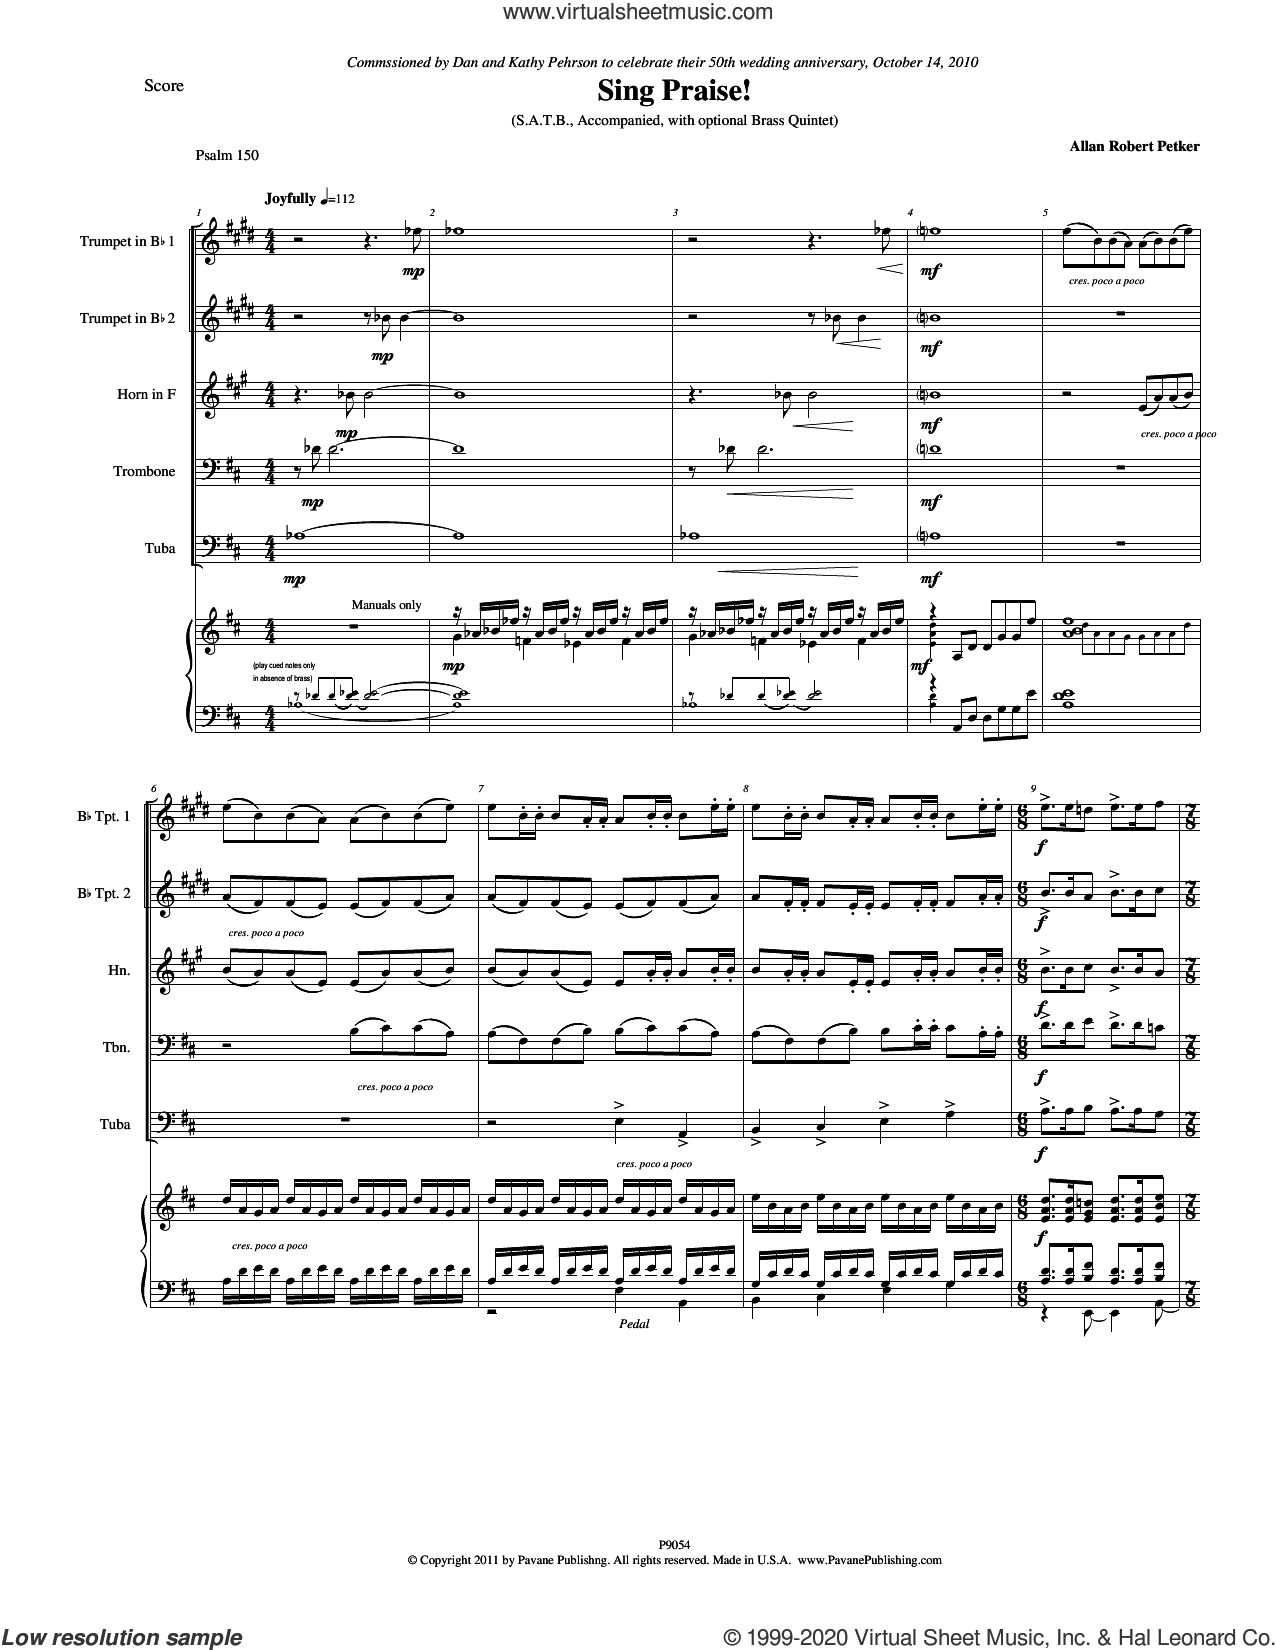 Sing Praise! (COMPLETE) sheet music for orchestra/band by Allan Robert Petker and Psalm 150, intermediate skill level